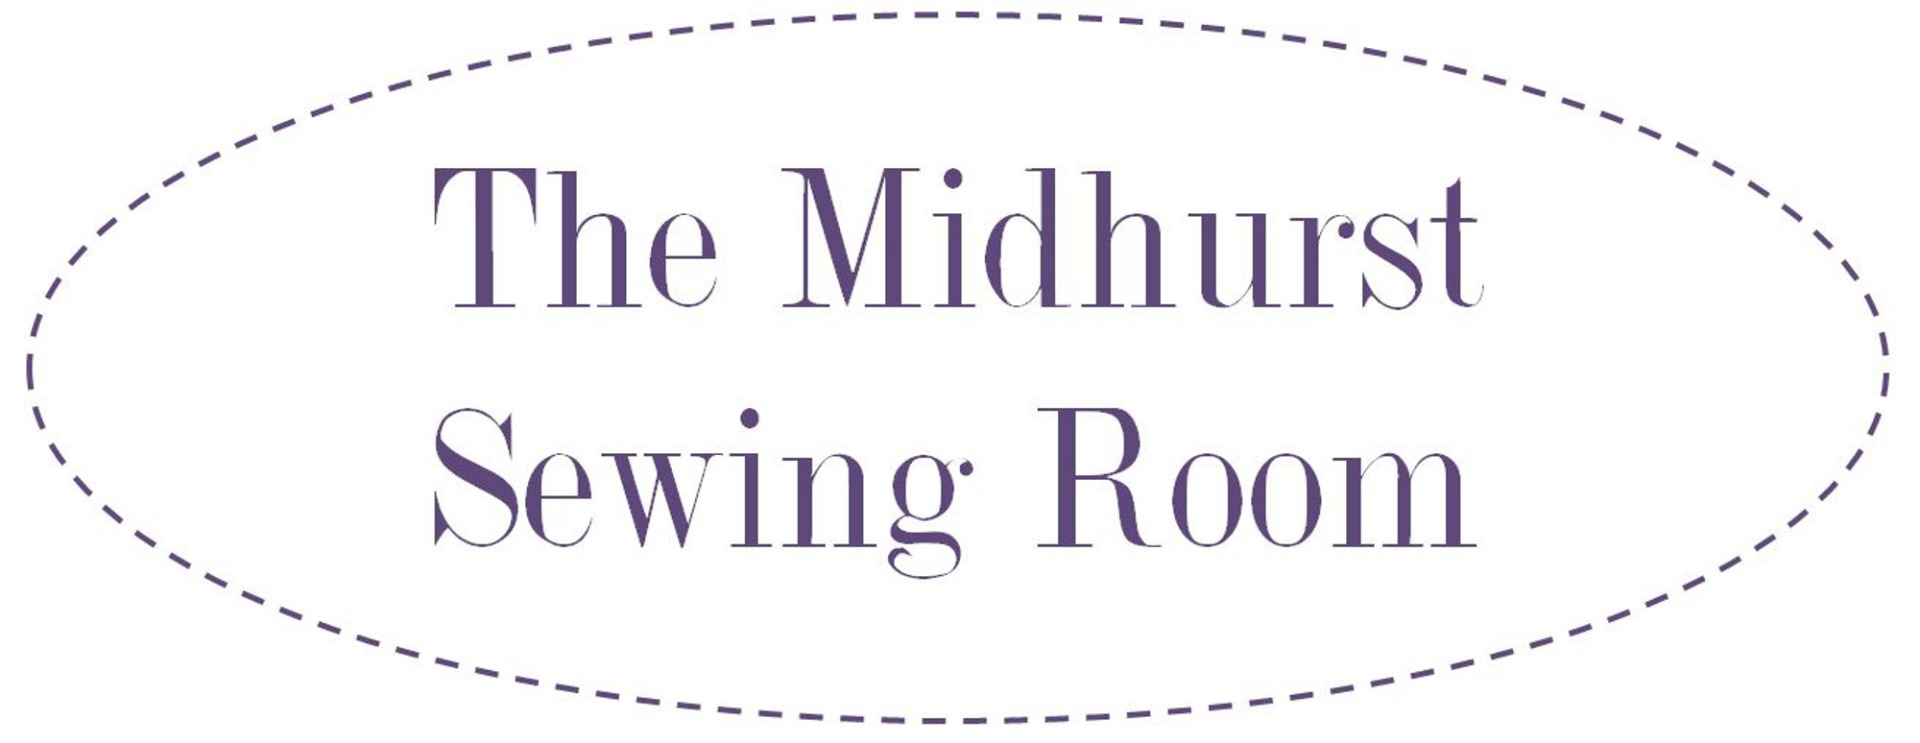 The Midhurst Sewing Room